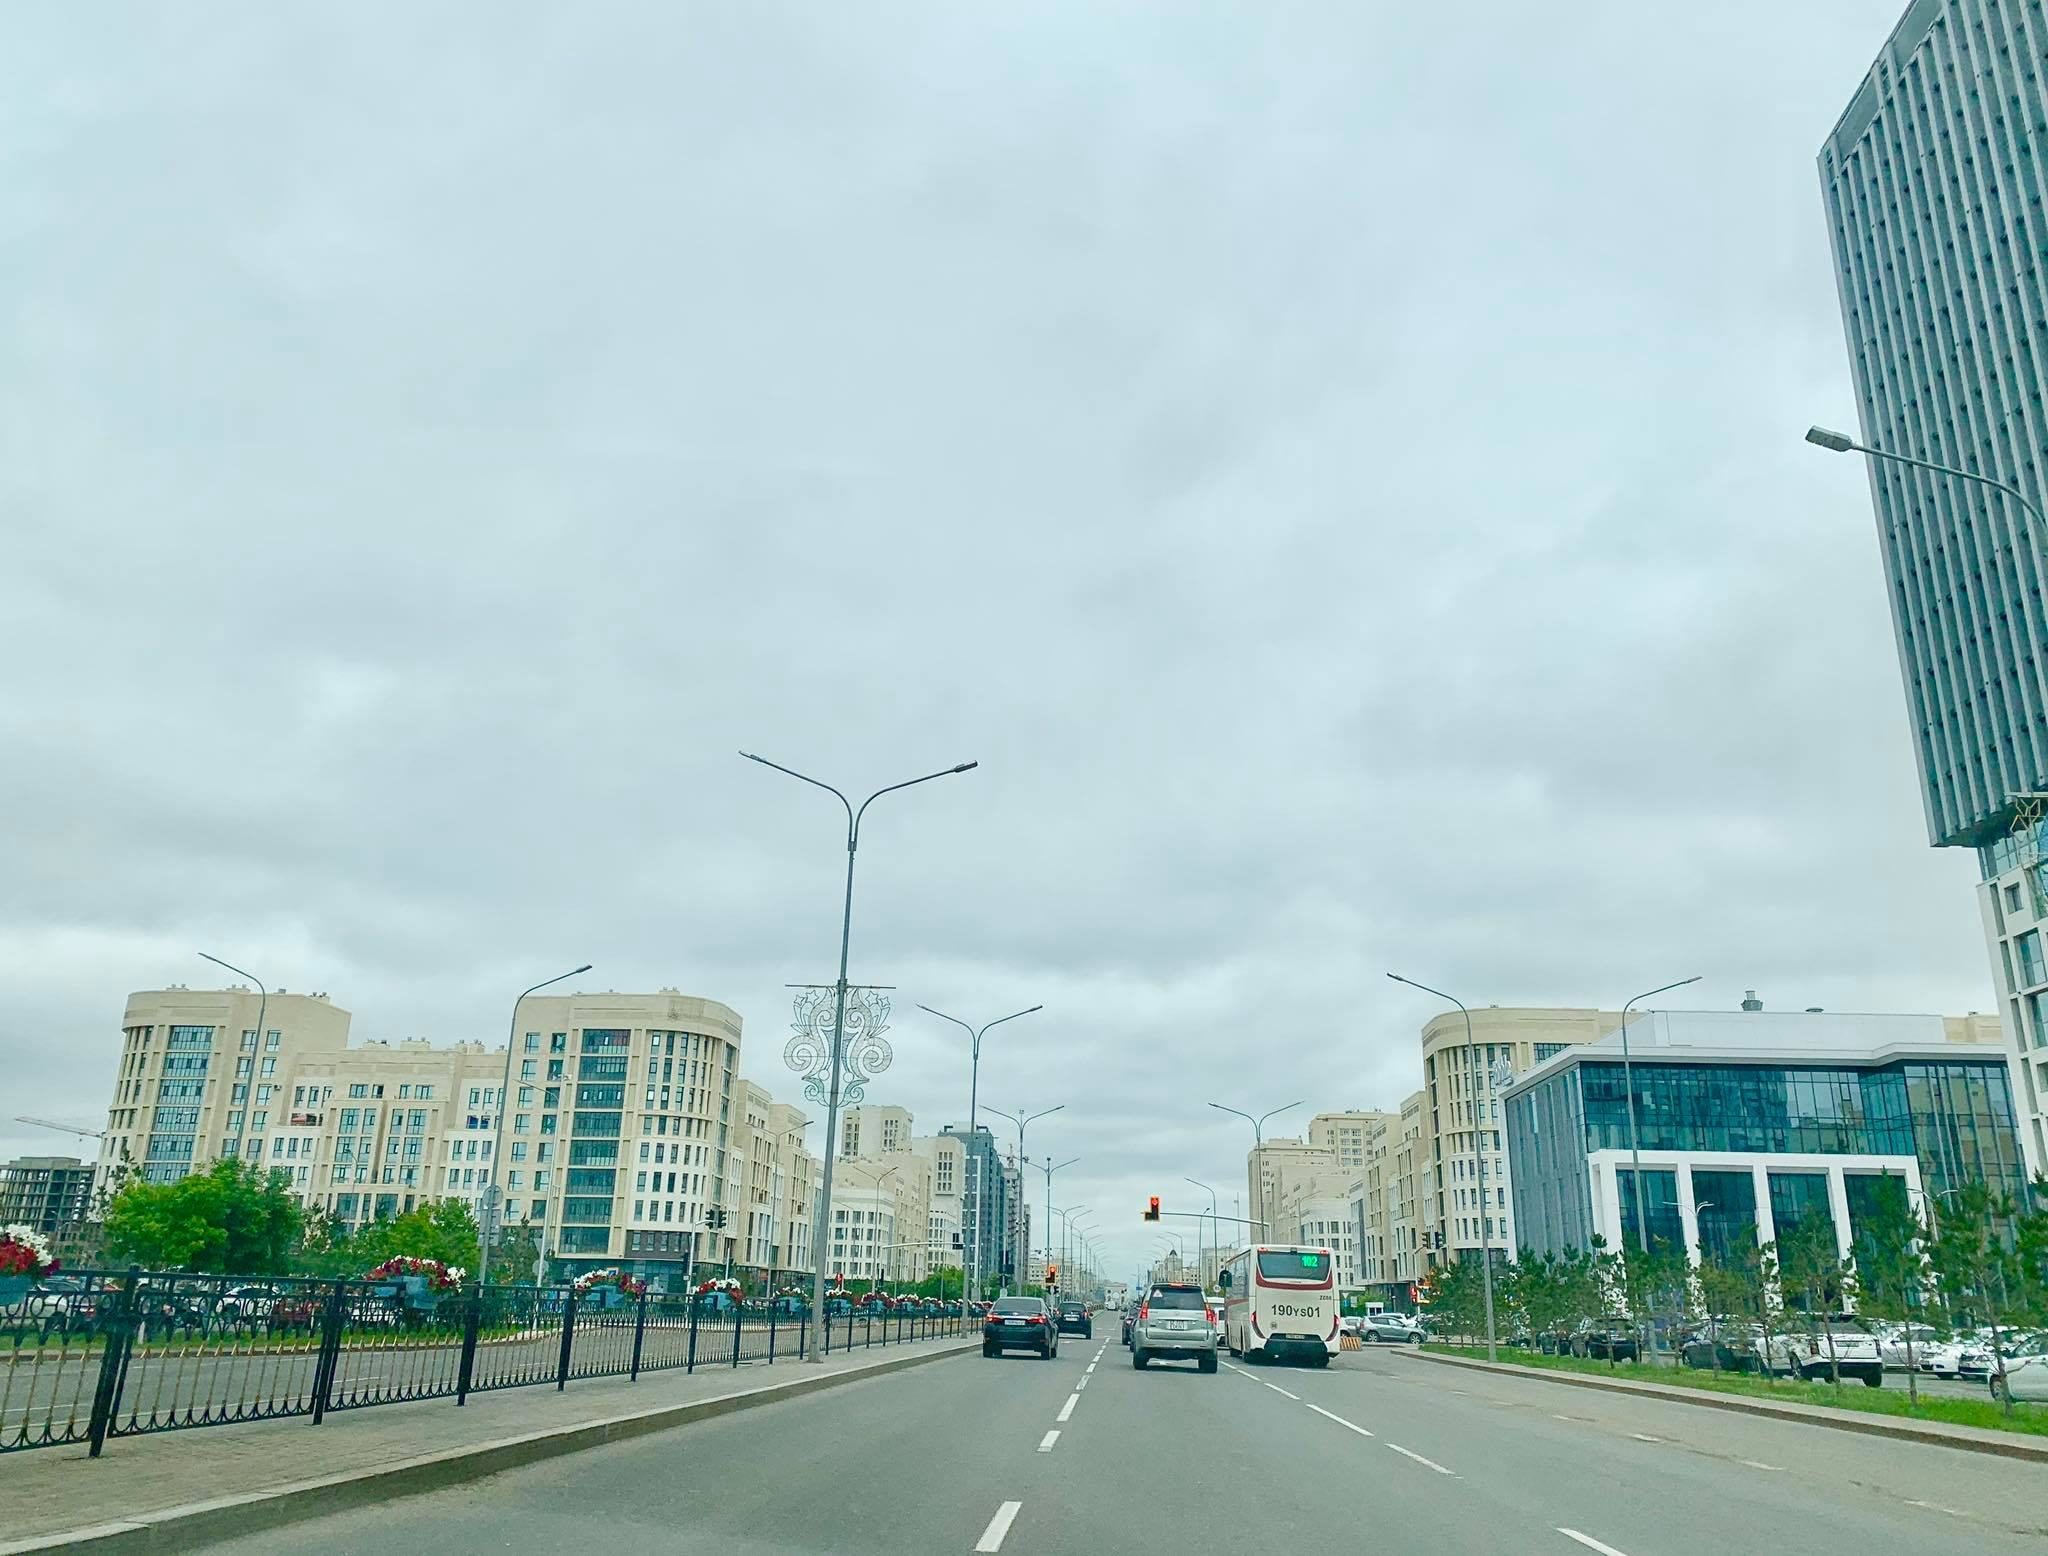 Kach Solo Travels in 2019 Hello from Astana, KAZAKHSTAN (my 129th country)3.jpg